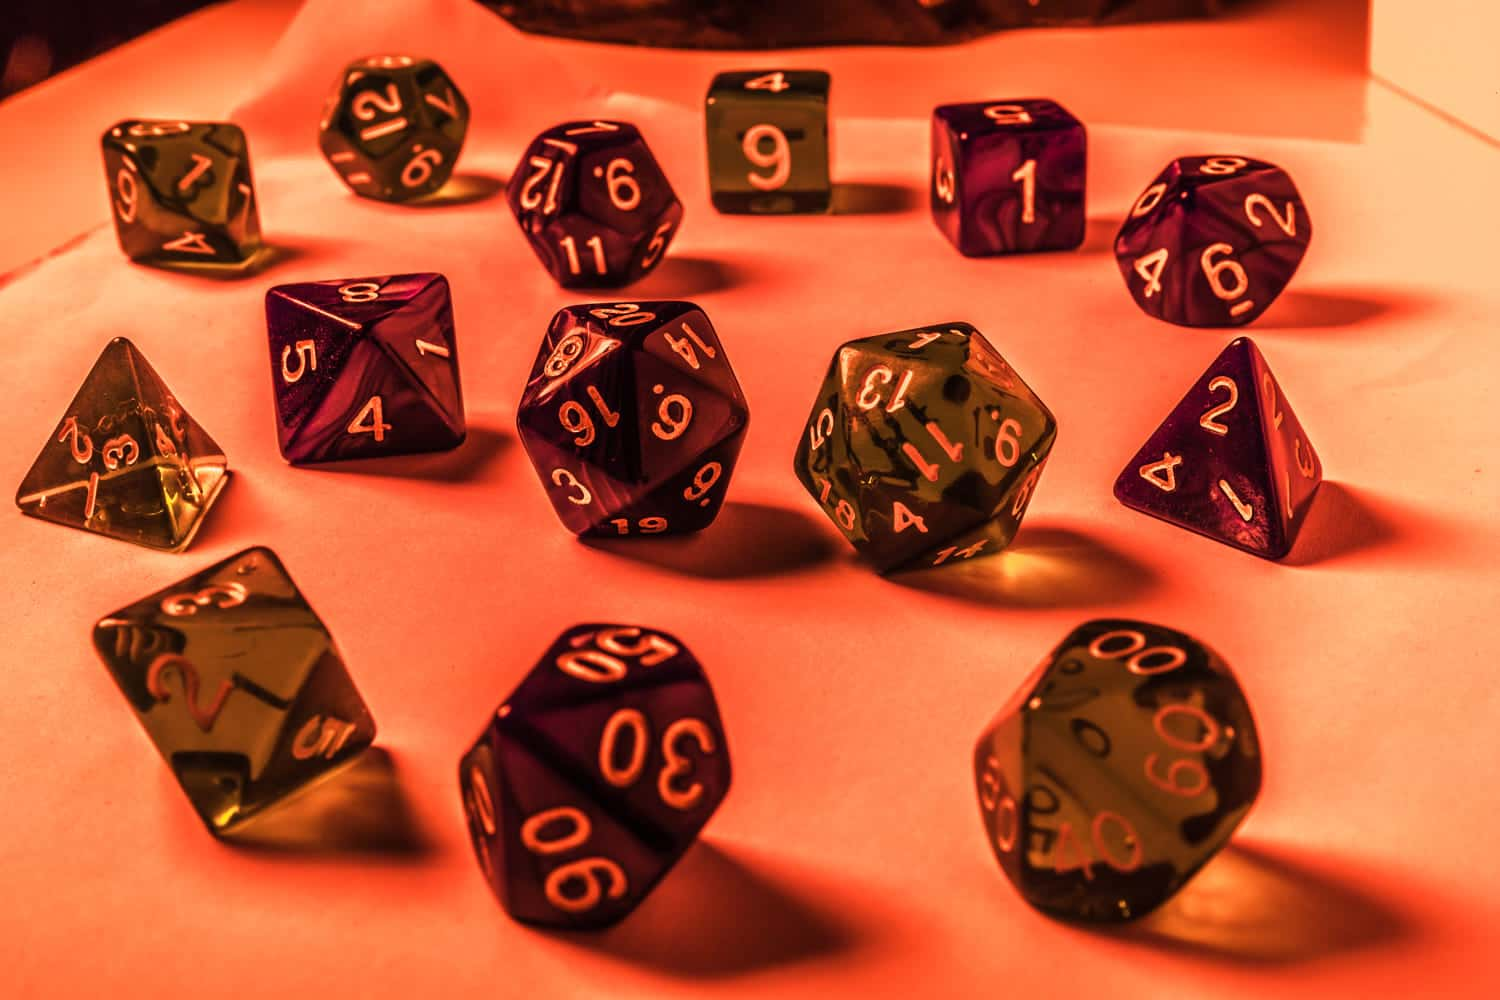 Duergar are a subrace of dwarves in the fantasy role-playing game D&D